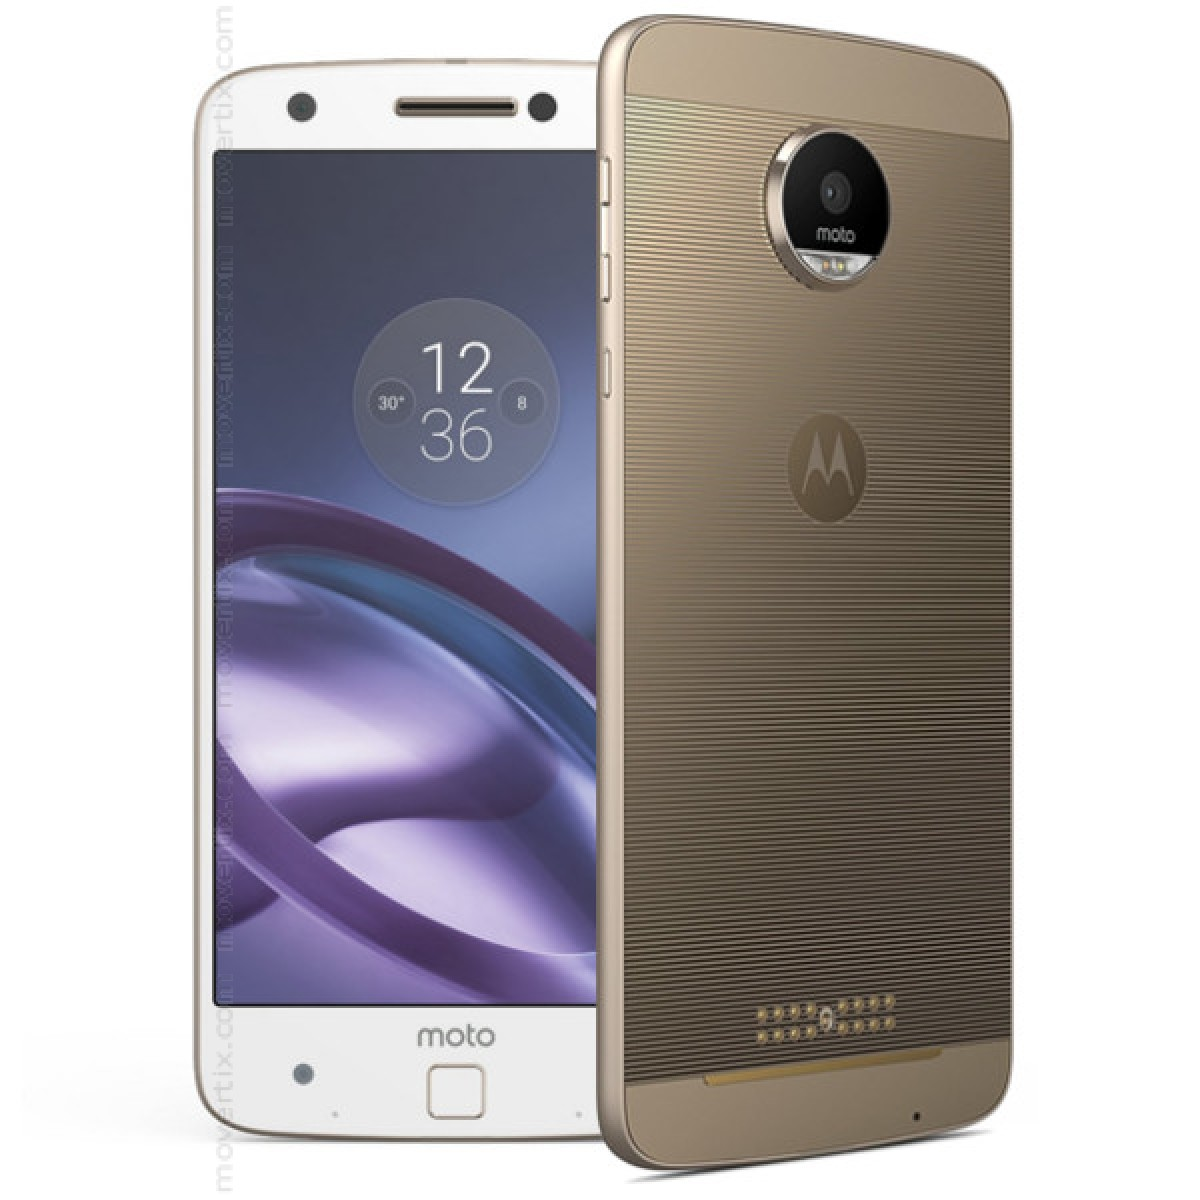 Hi, anyone can tell me how to upgrade Motorola MB to jelly bean, right now it is upgradable to ice cream sandwich plz help me.